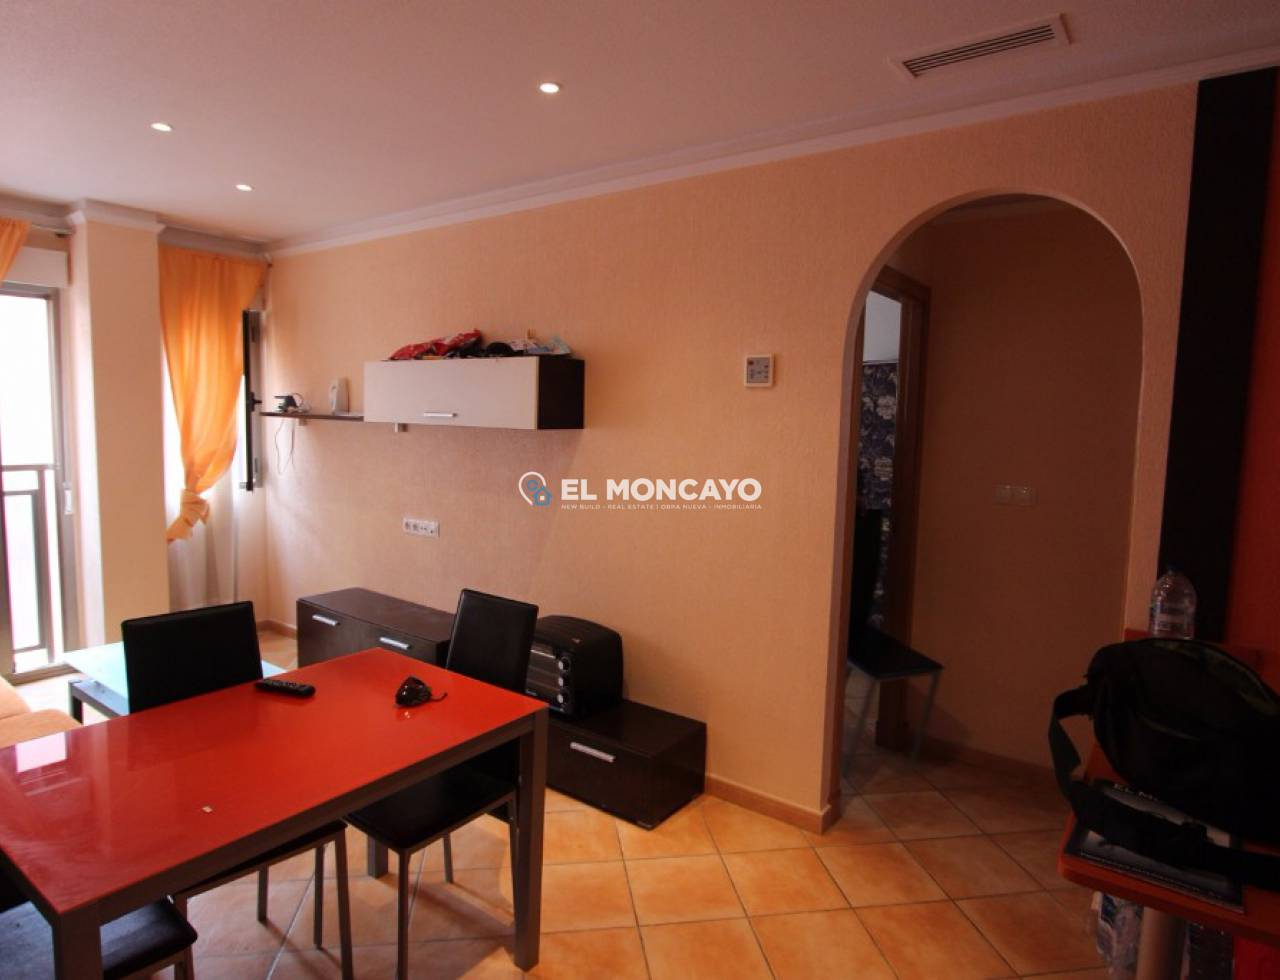 Apartment with pool jacuzzi and gym in formentera del